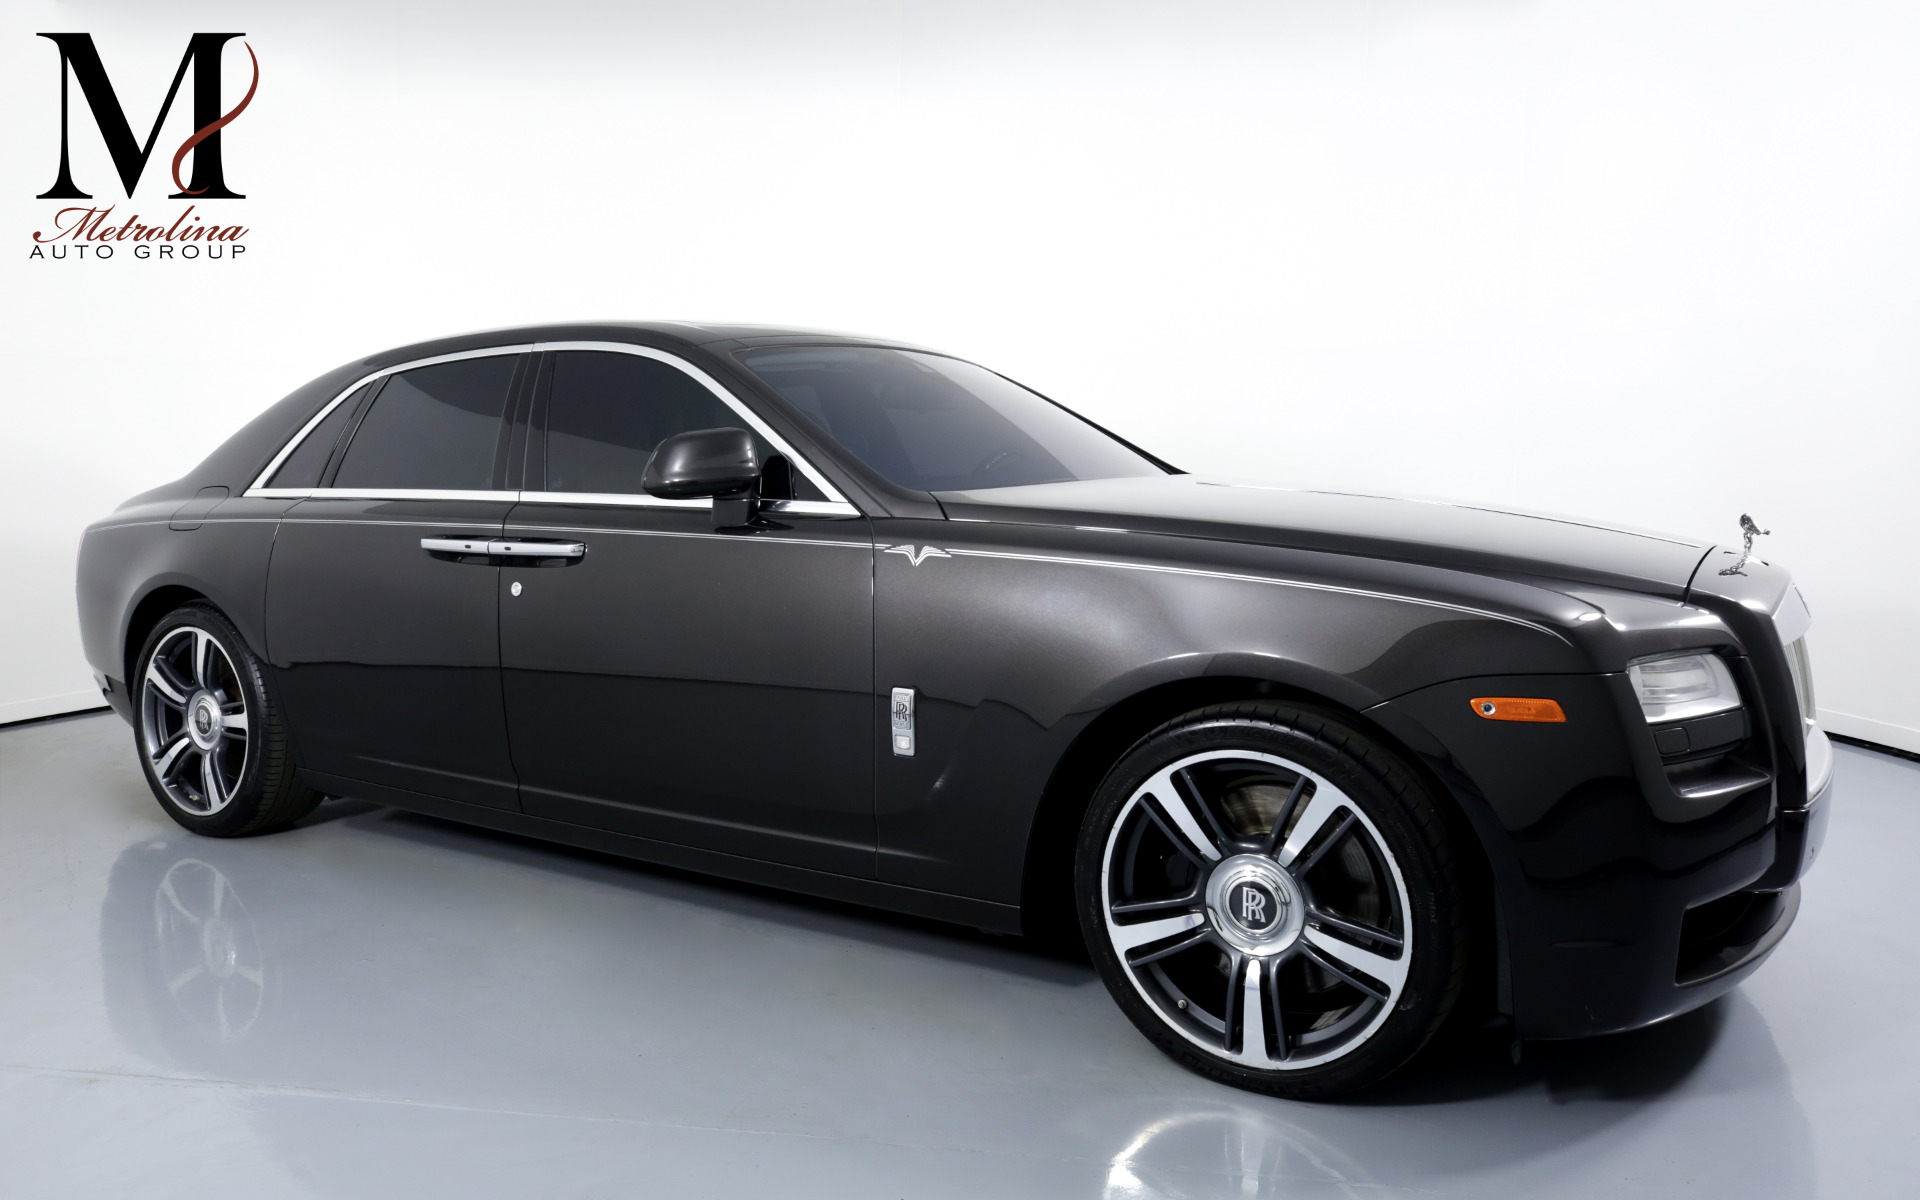 Used 2014 Rolls-Royce Ghost for sale $114,996 at Metrolina Auto Group in Charlotte NC 28217 - 1